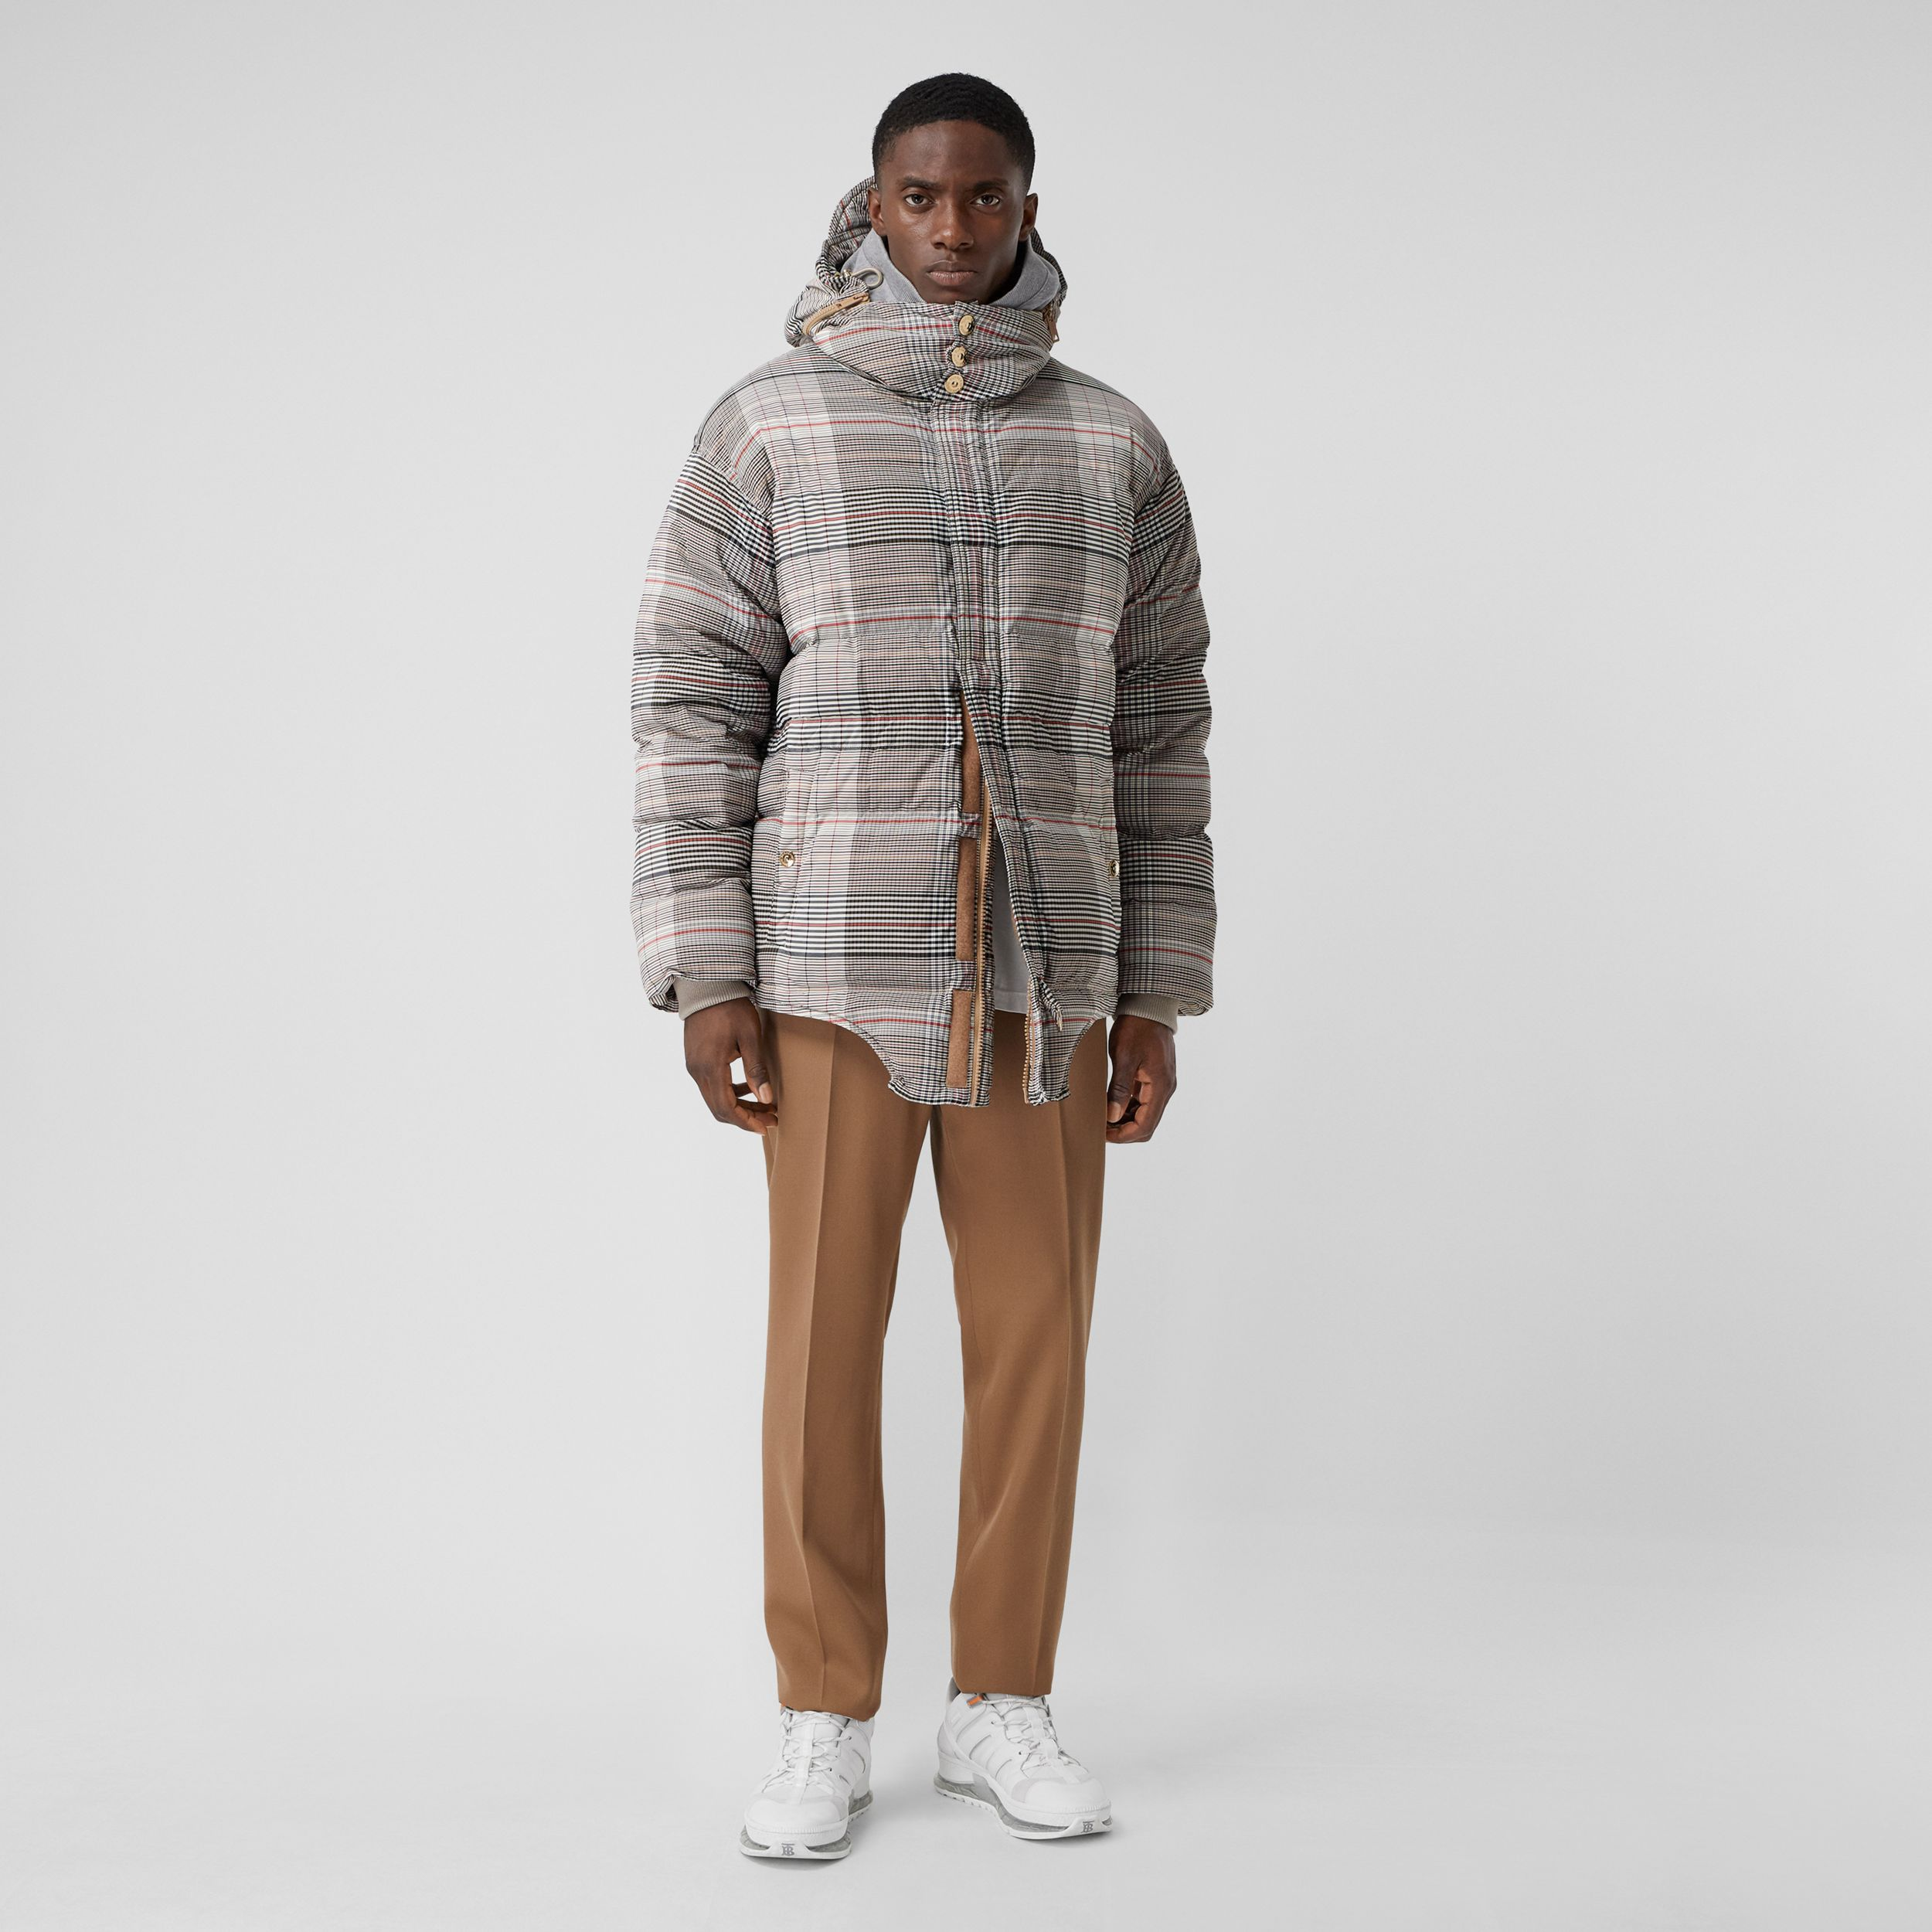 Cut-out Hem Check Nylon Twill Puffer Jacket in Beige - Men | Burberry - 1